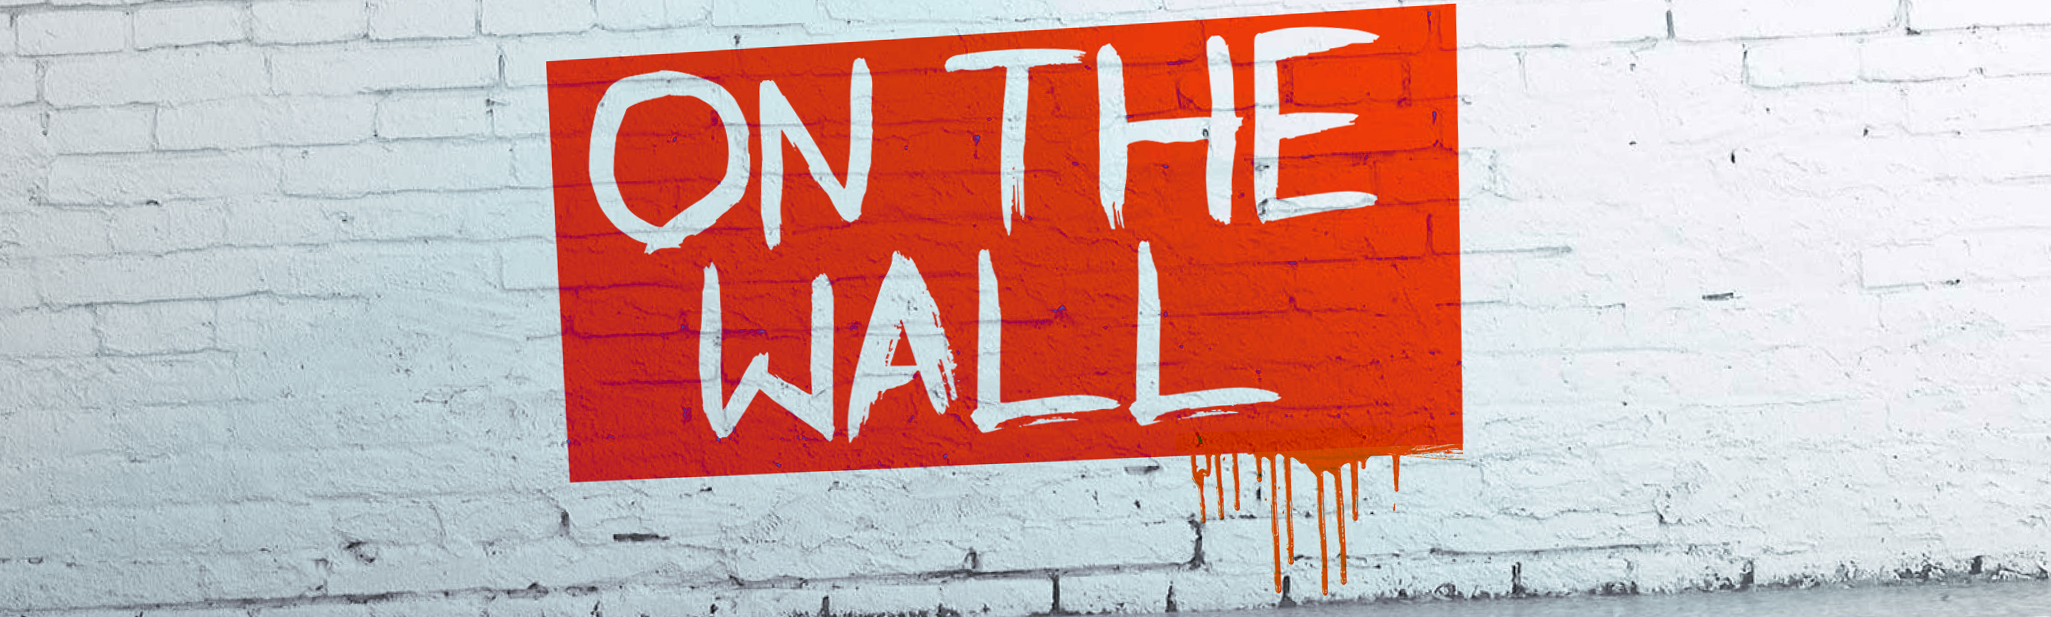 on the wall image.jpg